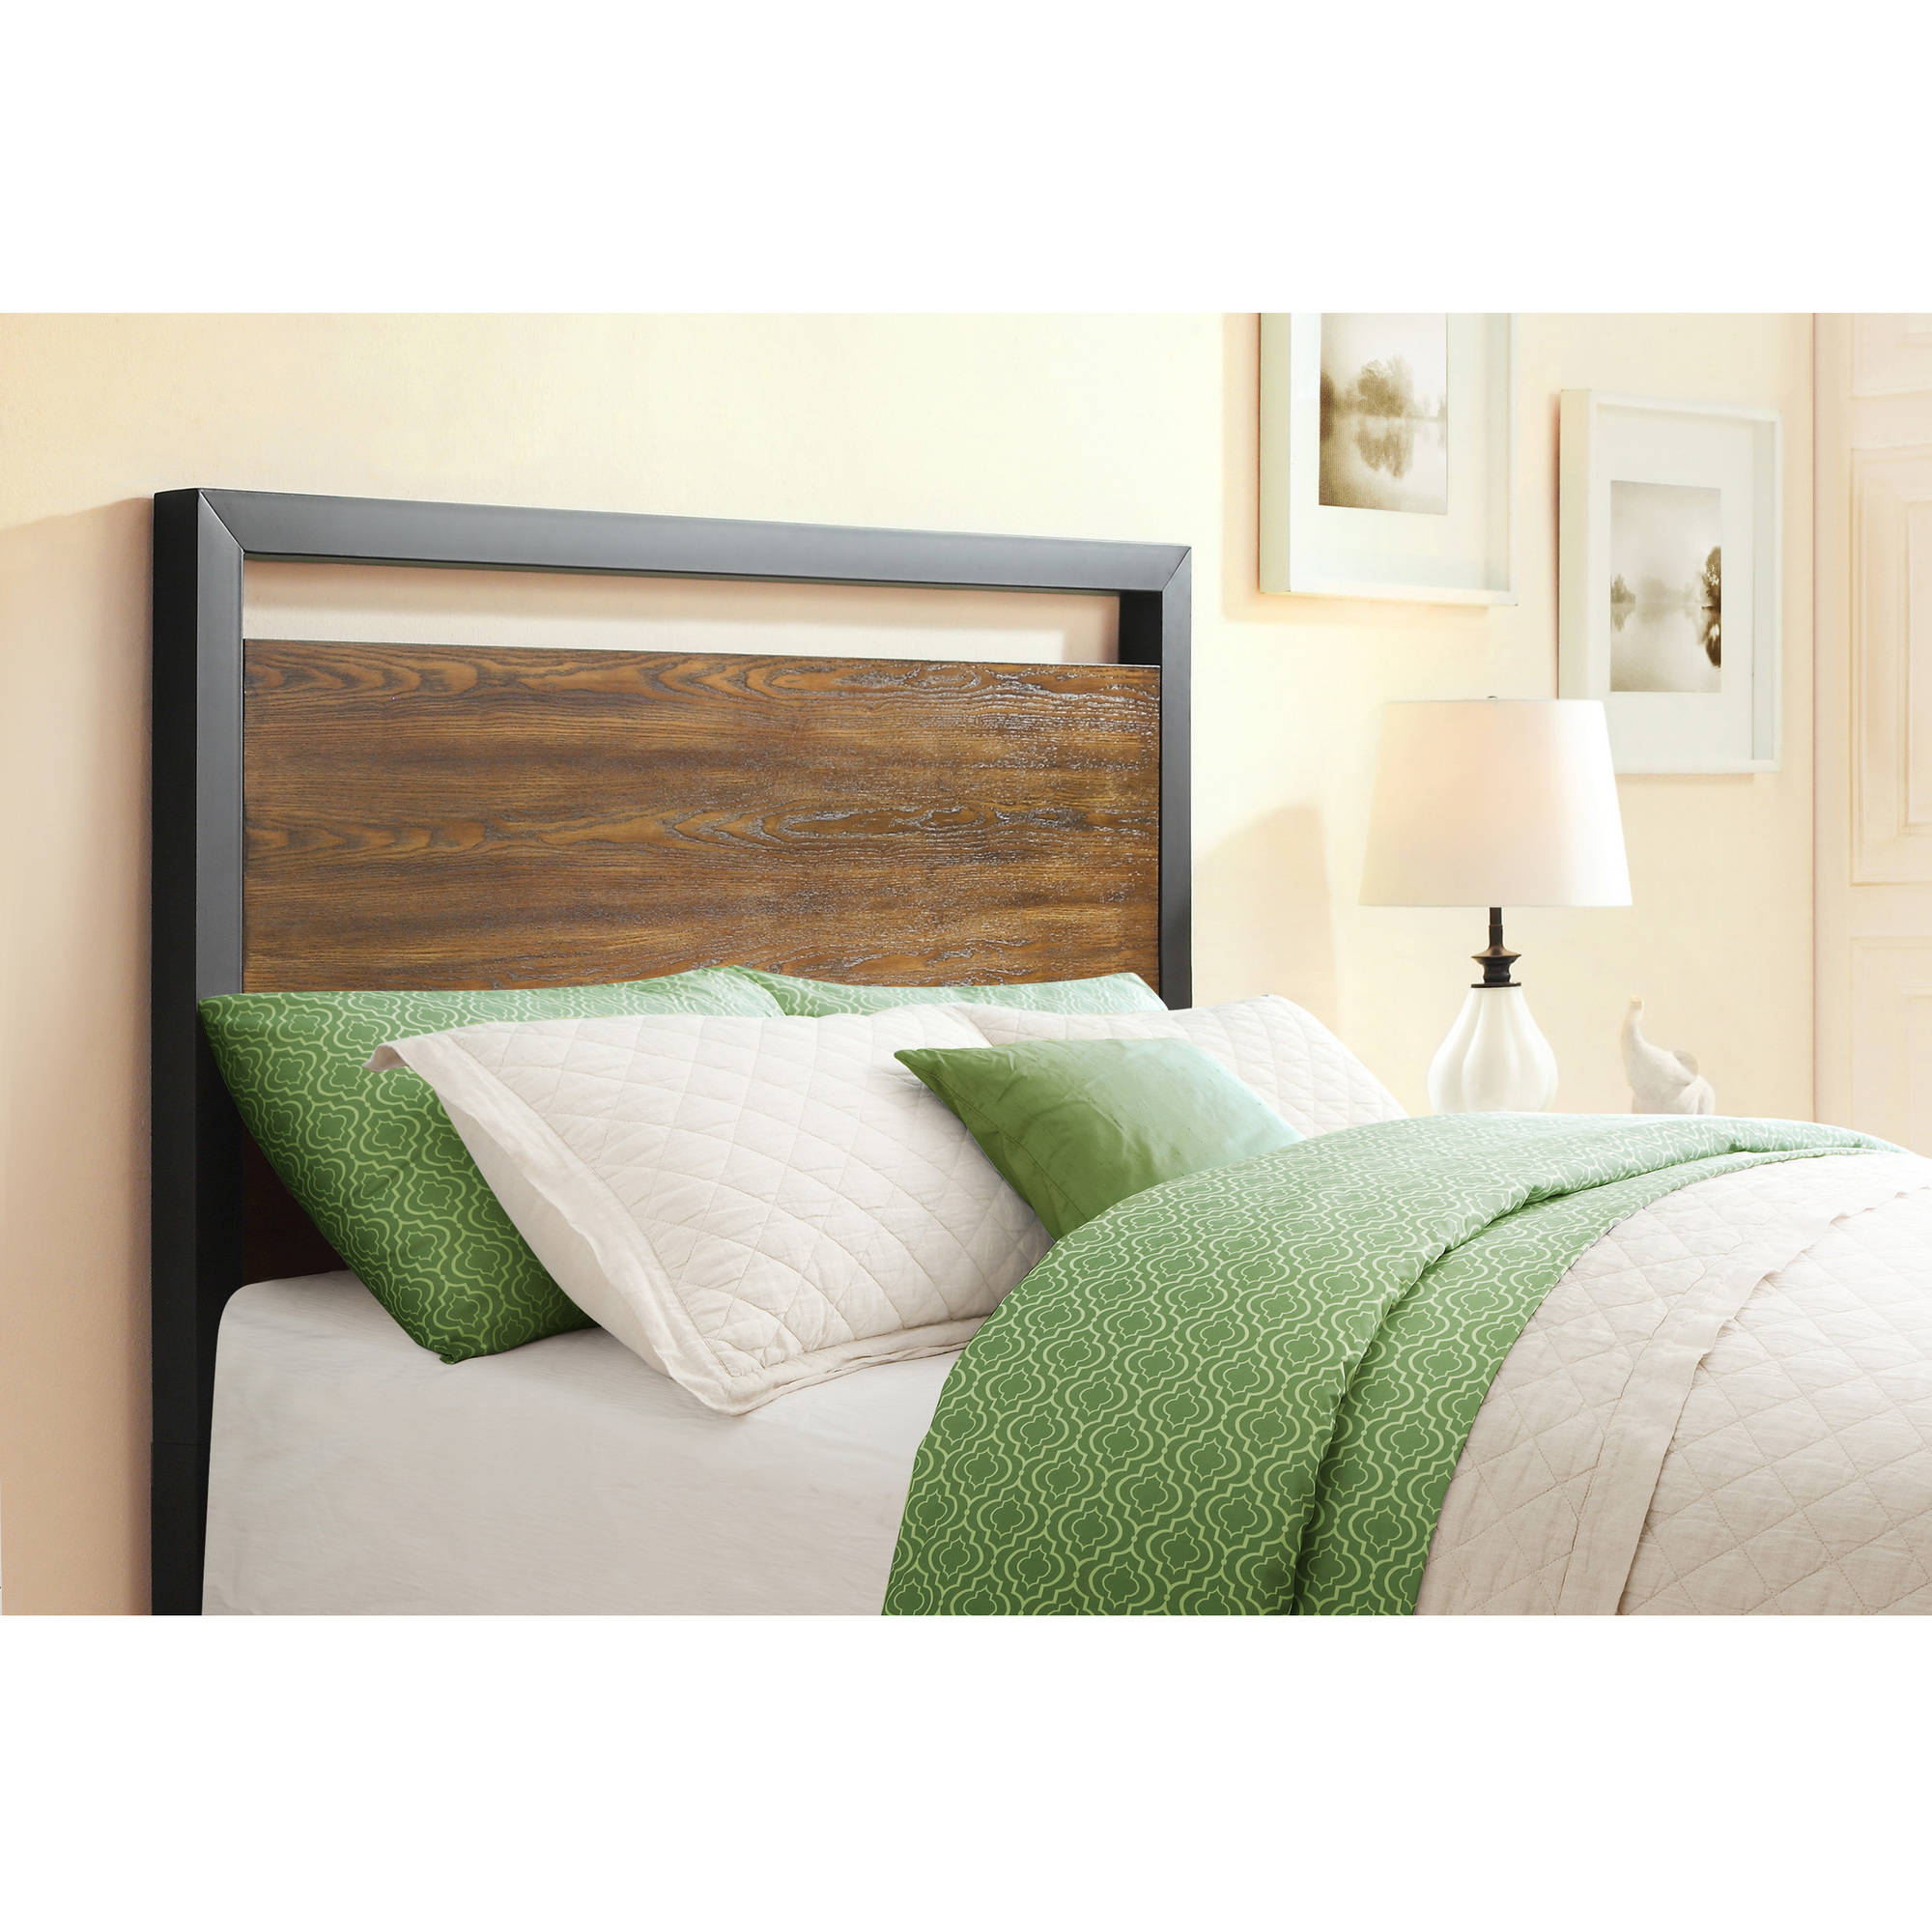 Better Homes & Gardens Mercer Full/Queen Headboard, Vintage Oak Finish